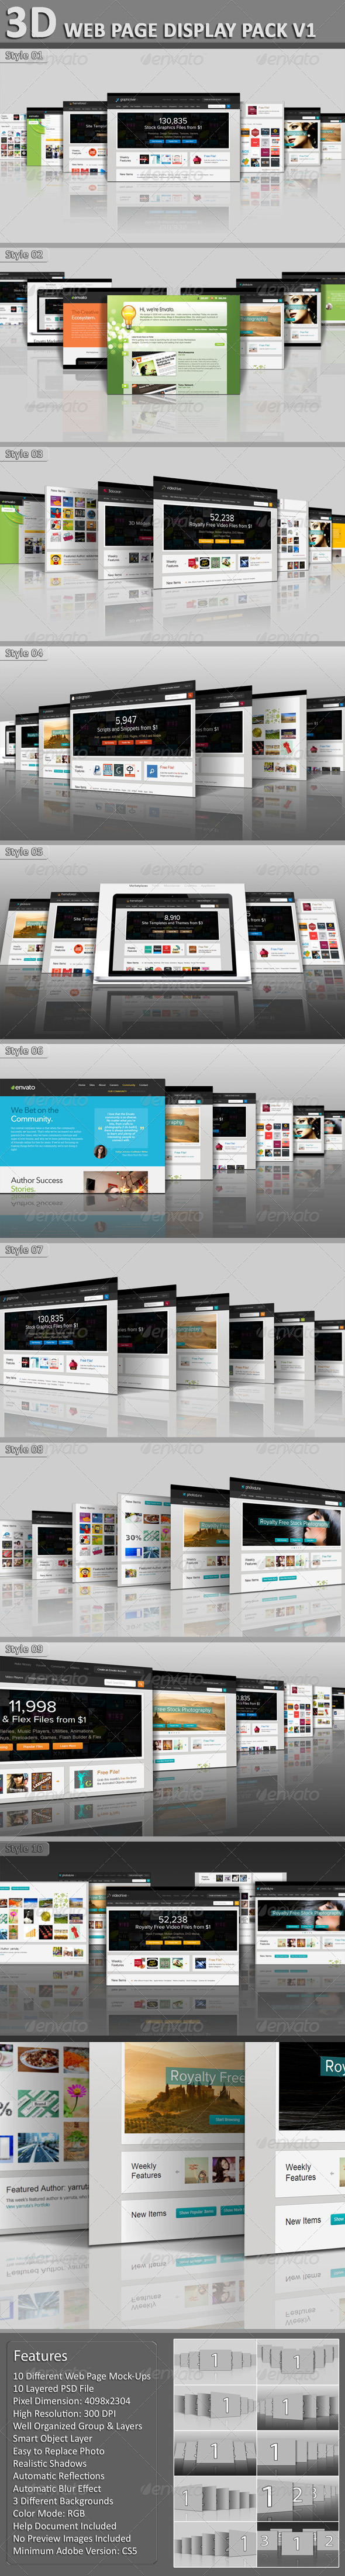 GraphicRiver 3D Web Page Display Pack V1 5159021